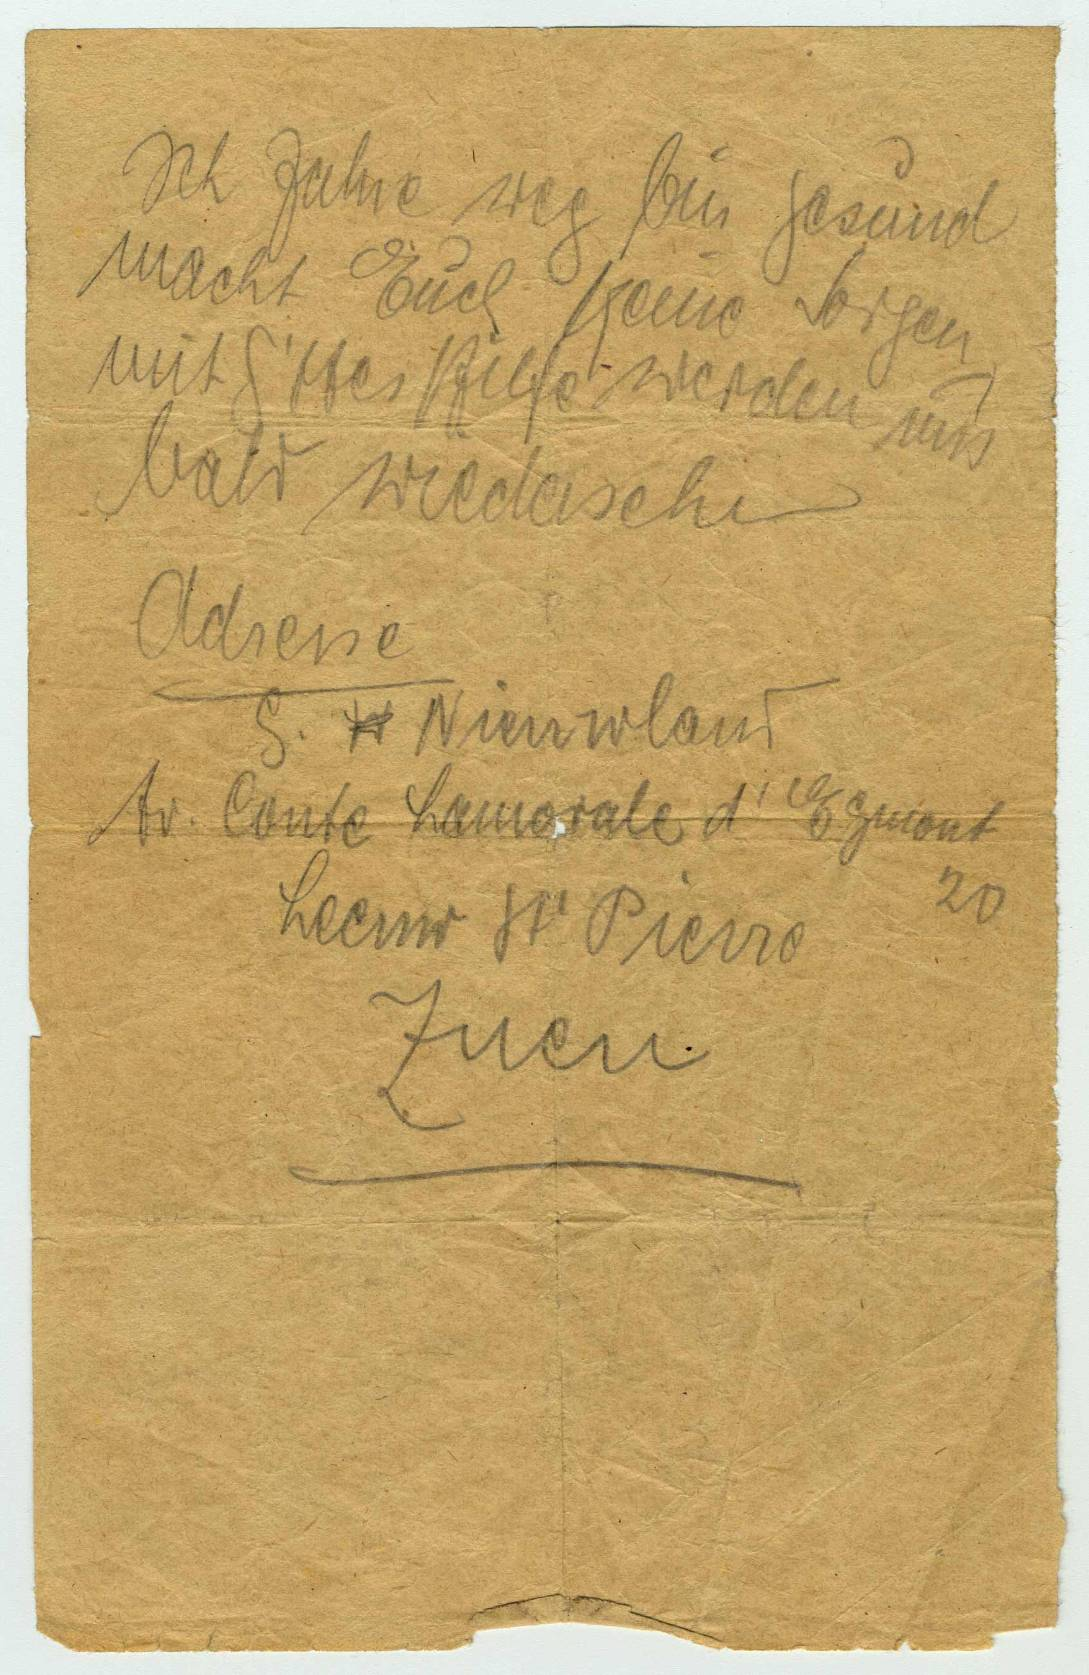 Letter written by Bella Kaminski from the train deporting her to Auschwitz, date unidentified, Belgium. Language: German.